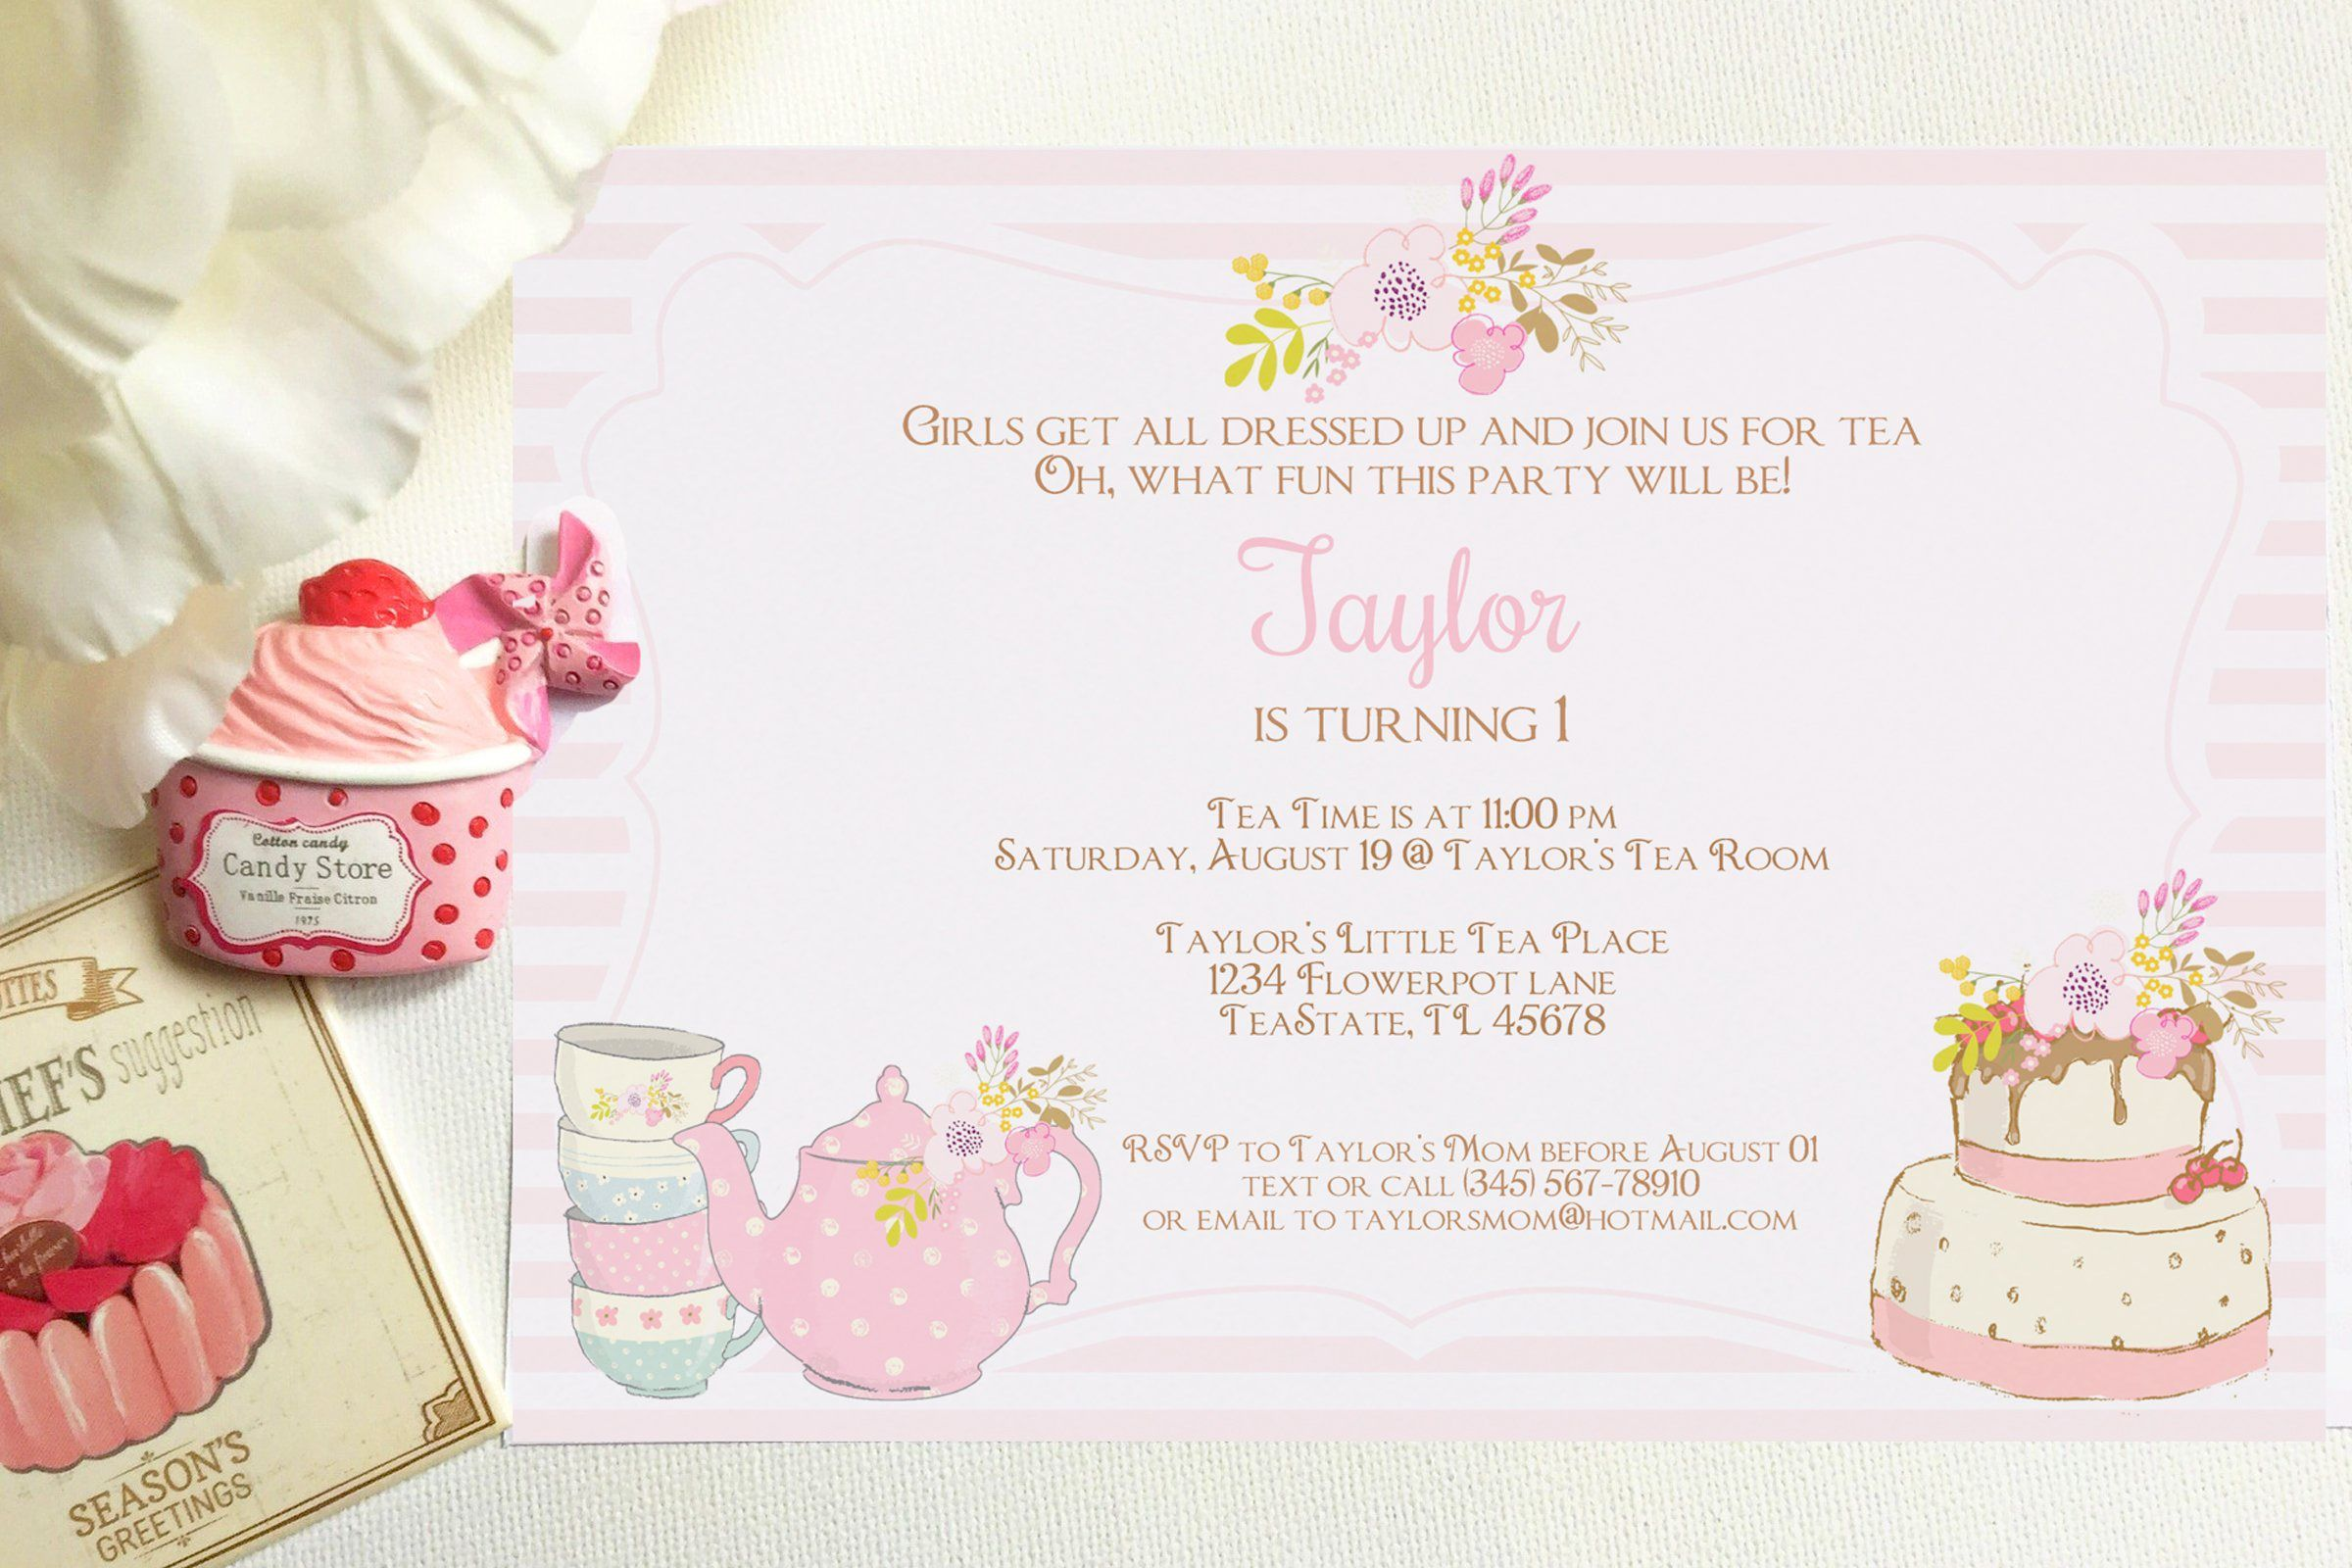 008 Outstanding Tea Party Invitation Template High Definition  Online LetterFull